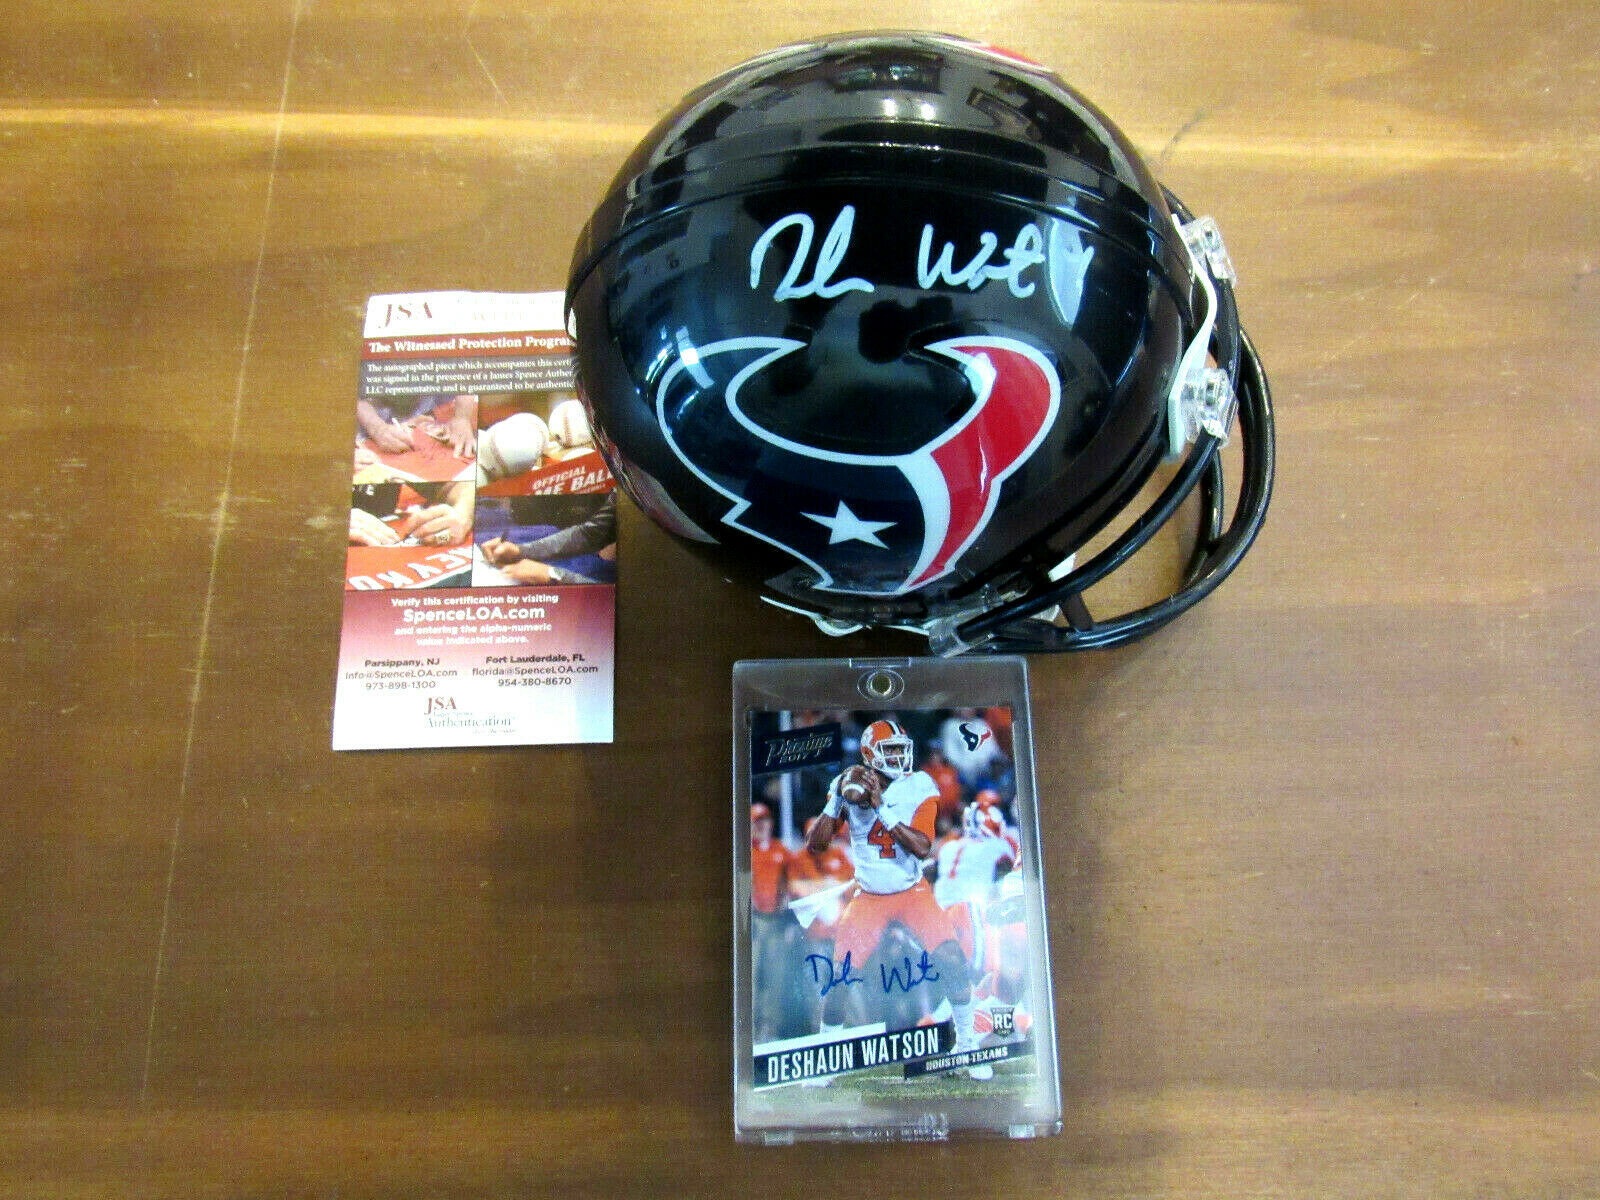 Primary image for DESHAUN WATSON HOUSTON TEXANS SIGNED AUTO MINI HELMET PLUS 2017 PANINI CARD JSA